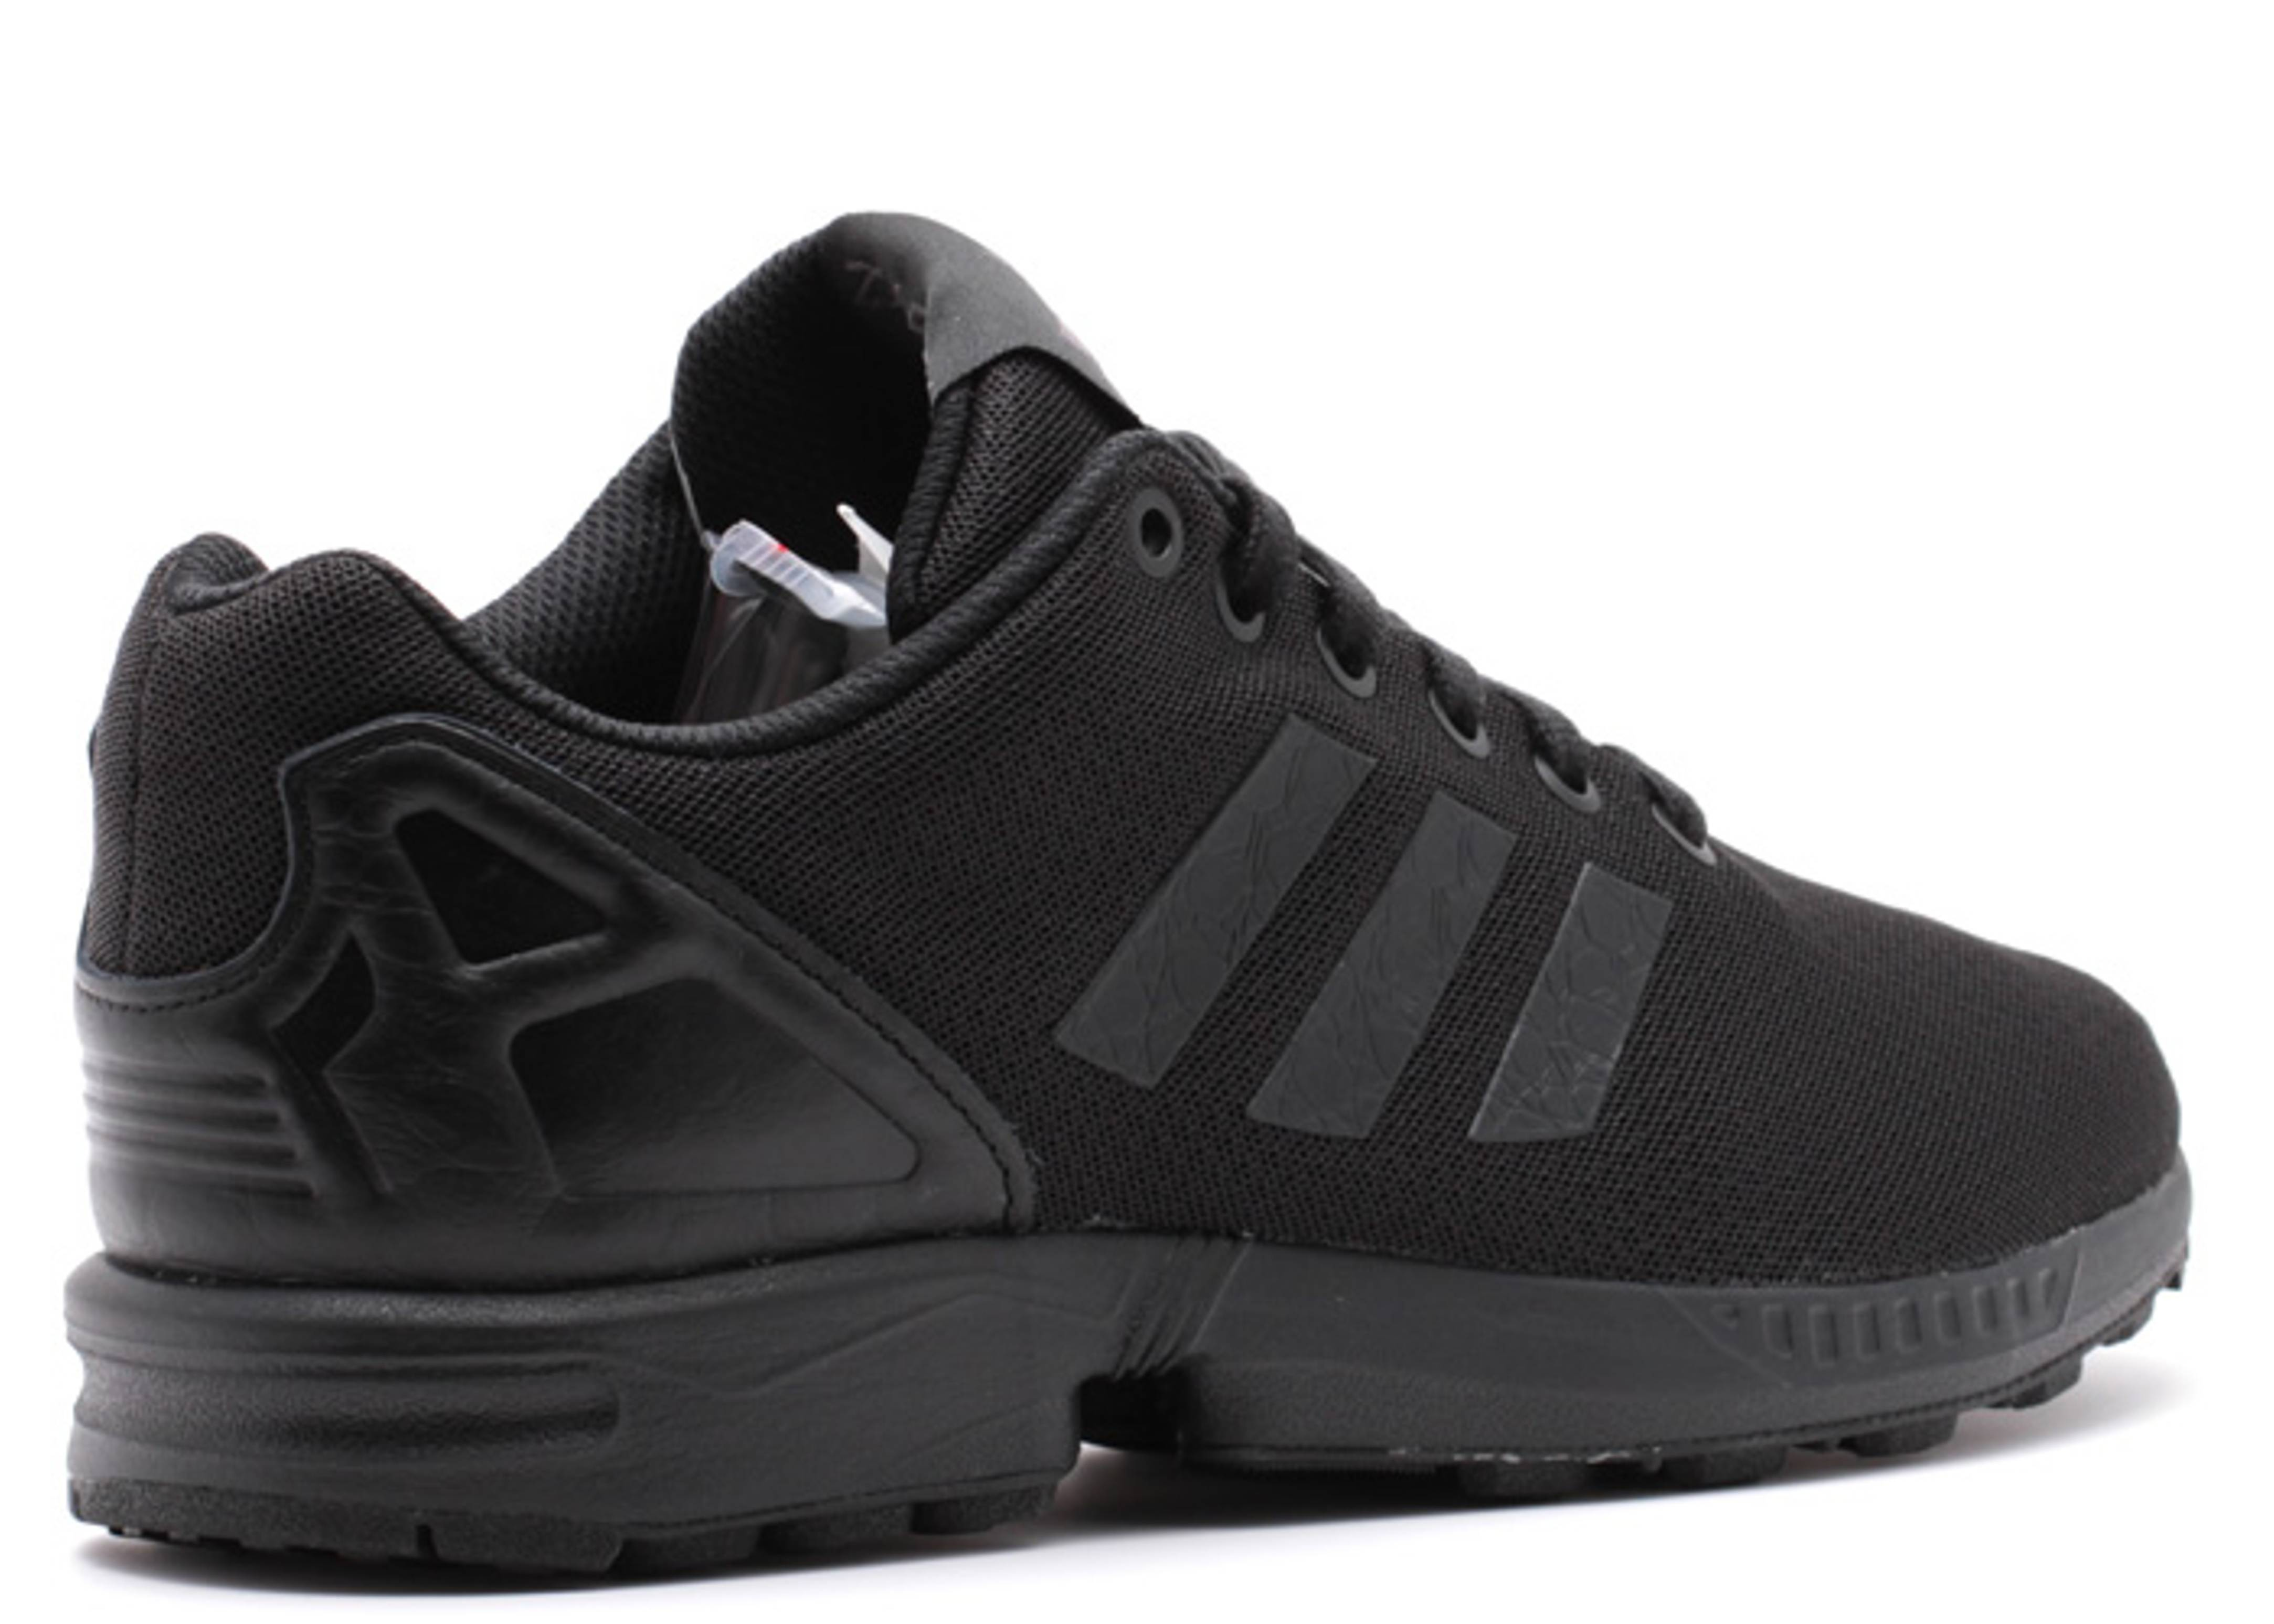 low priced 34b23 3772c adidas zx flux triple black